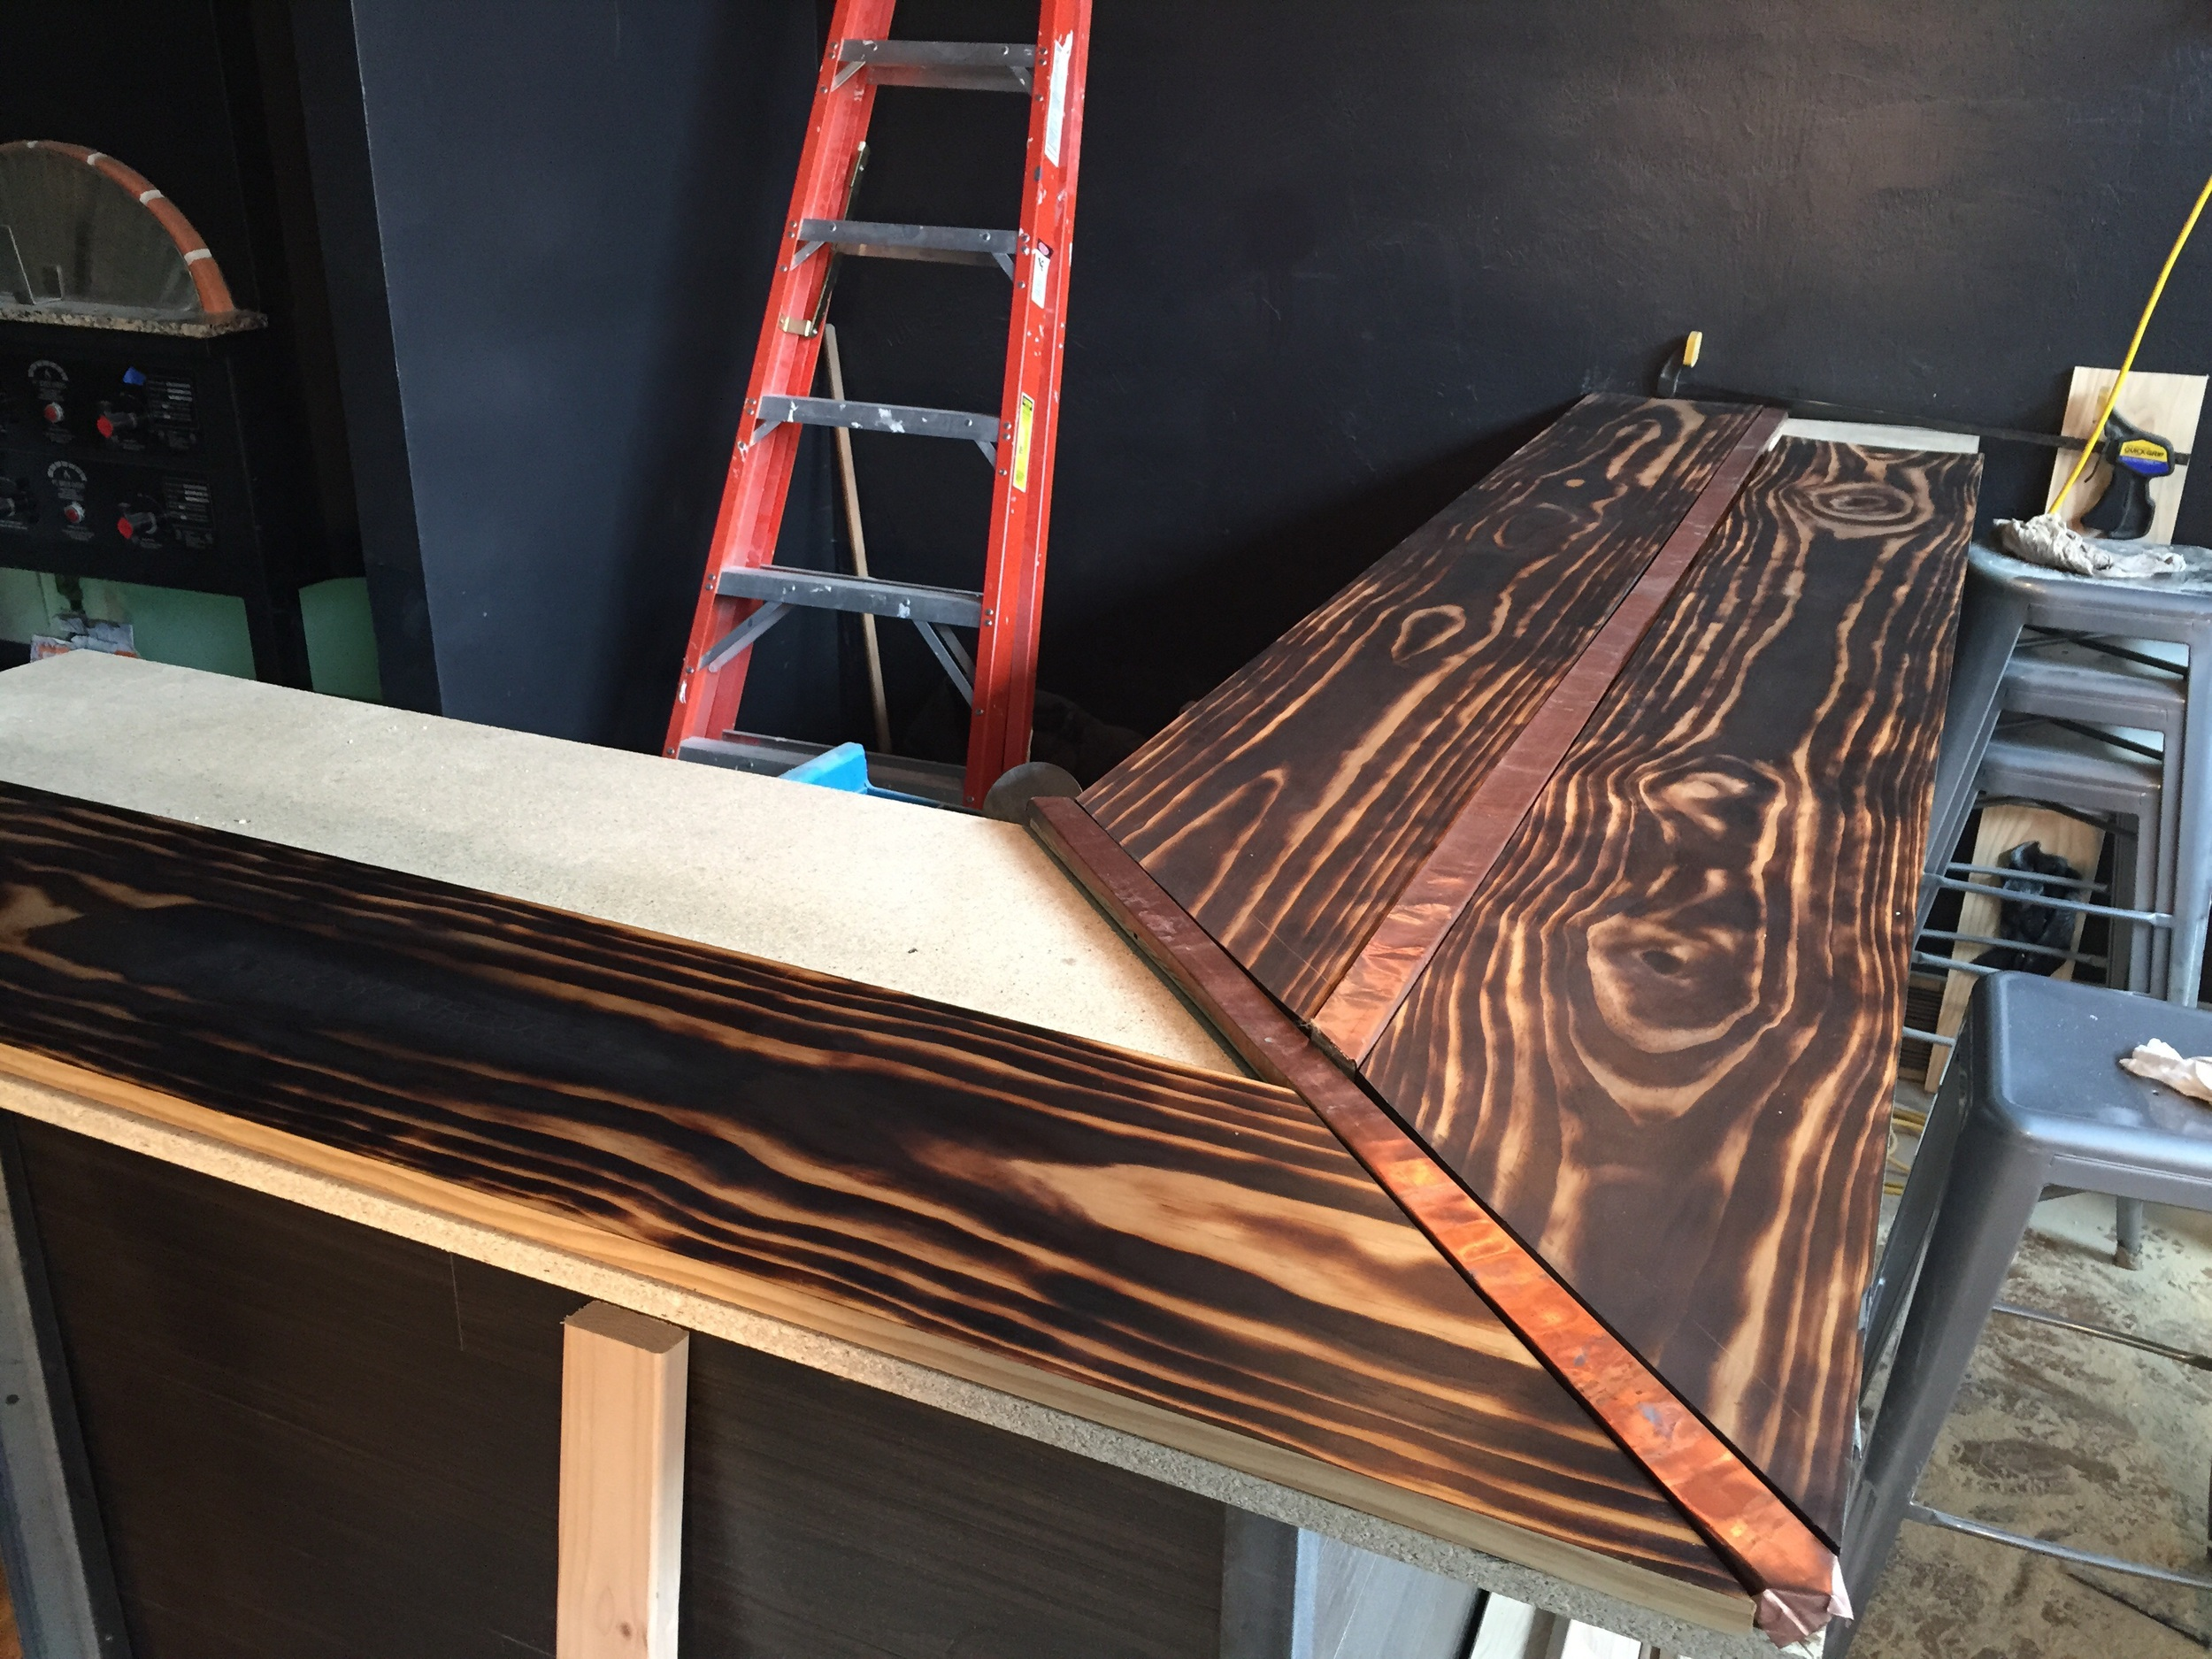 The bar is mid-construction here.  The wood for this bar was stained a natural color to let the burnt grain pattern stay visible down the length of it.